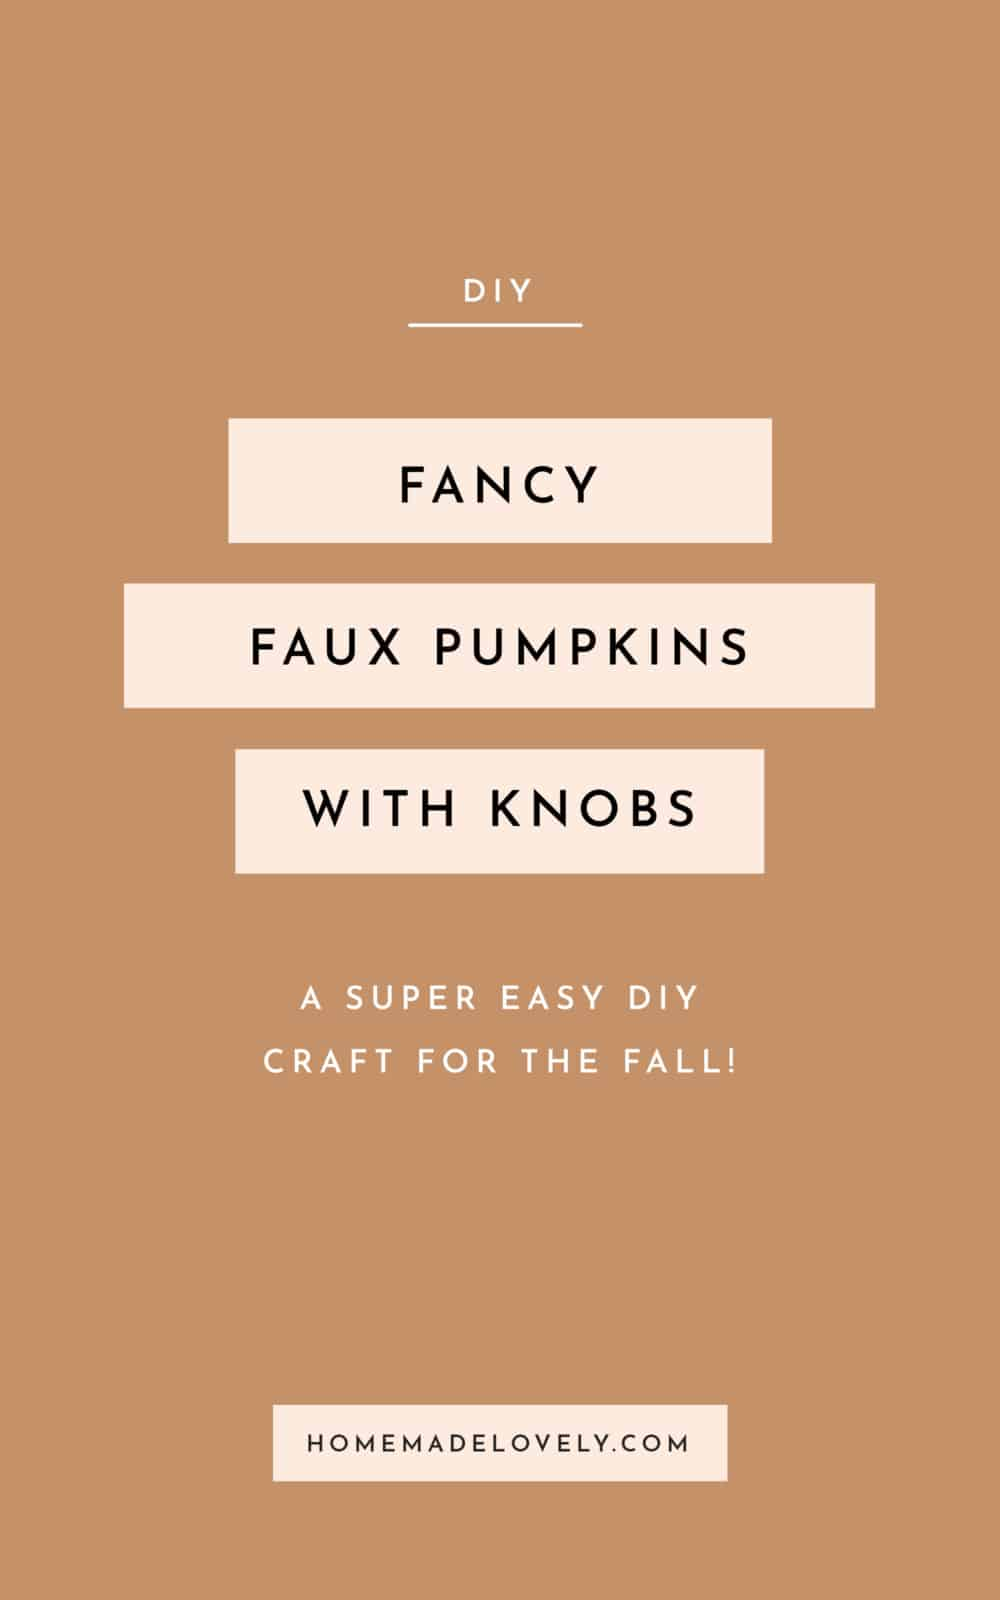 fancy faux pumpkins with knobs text on orange background